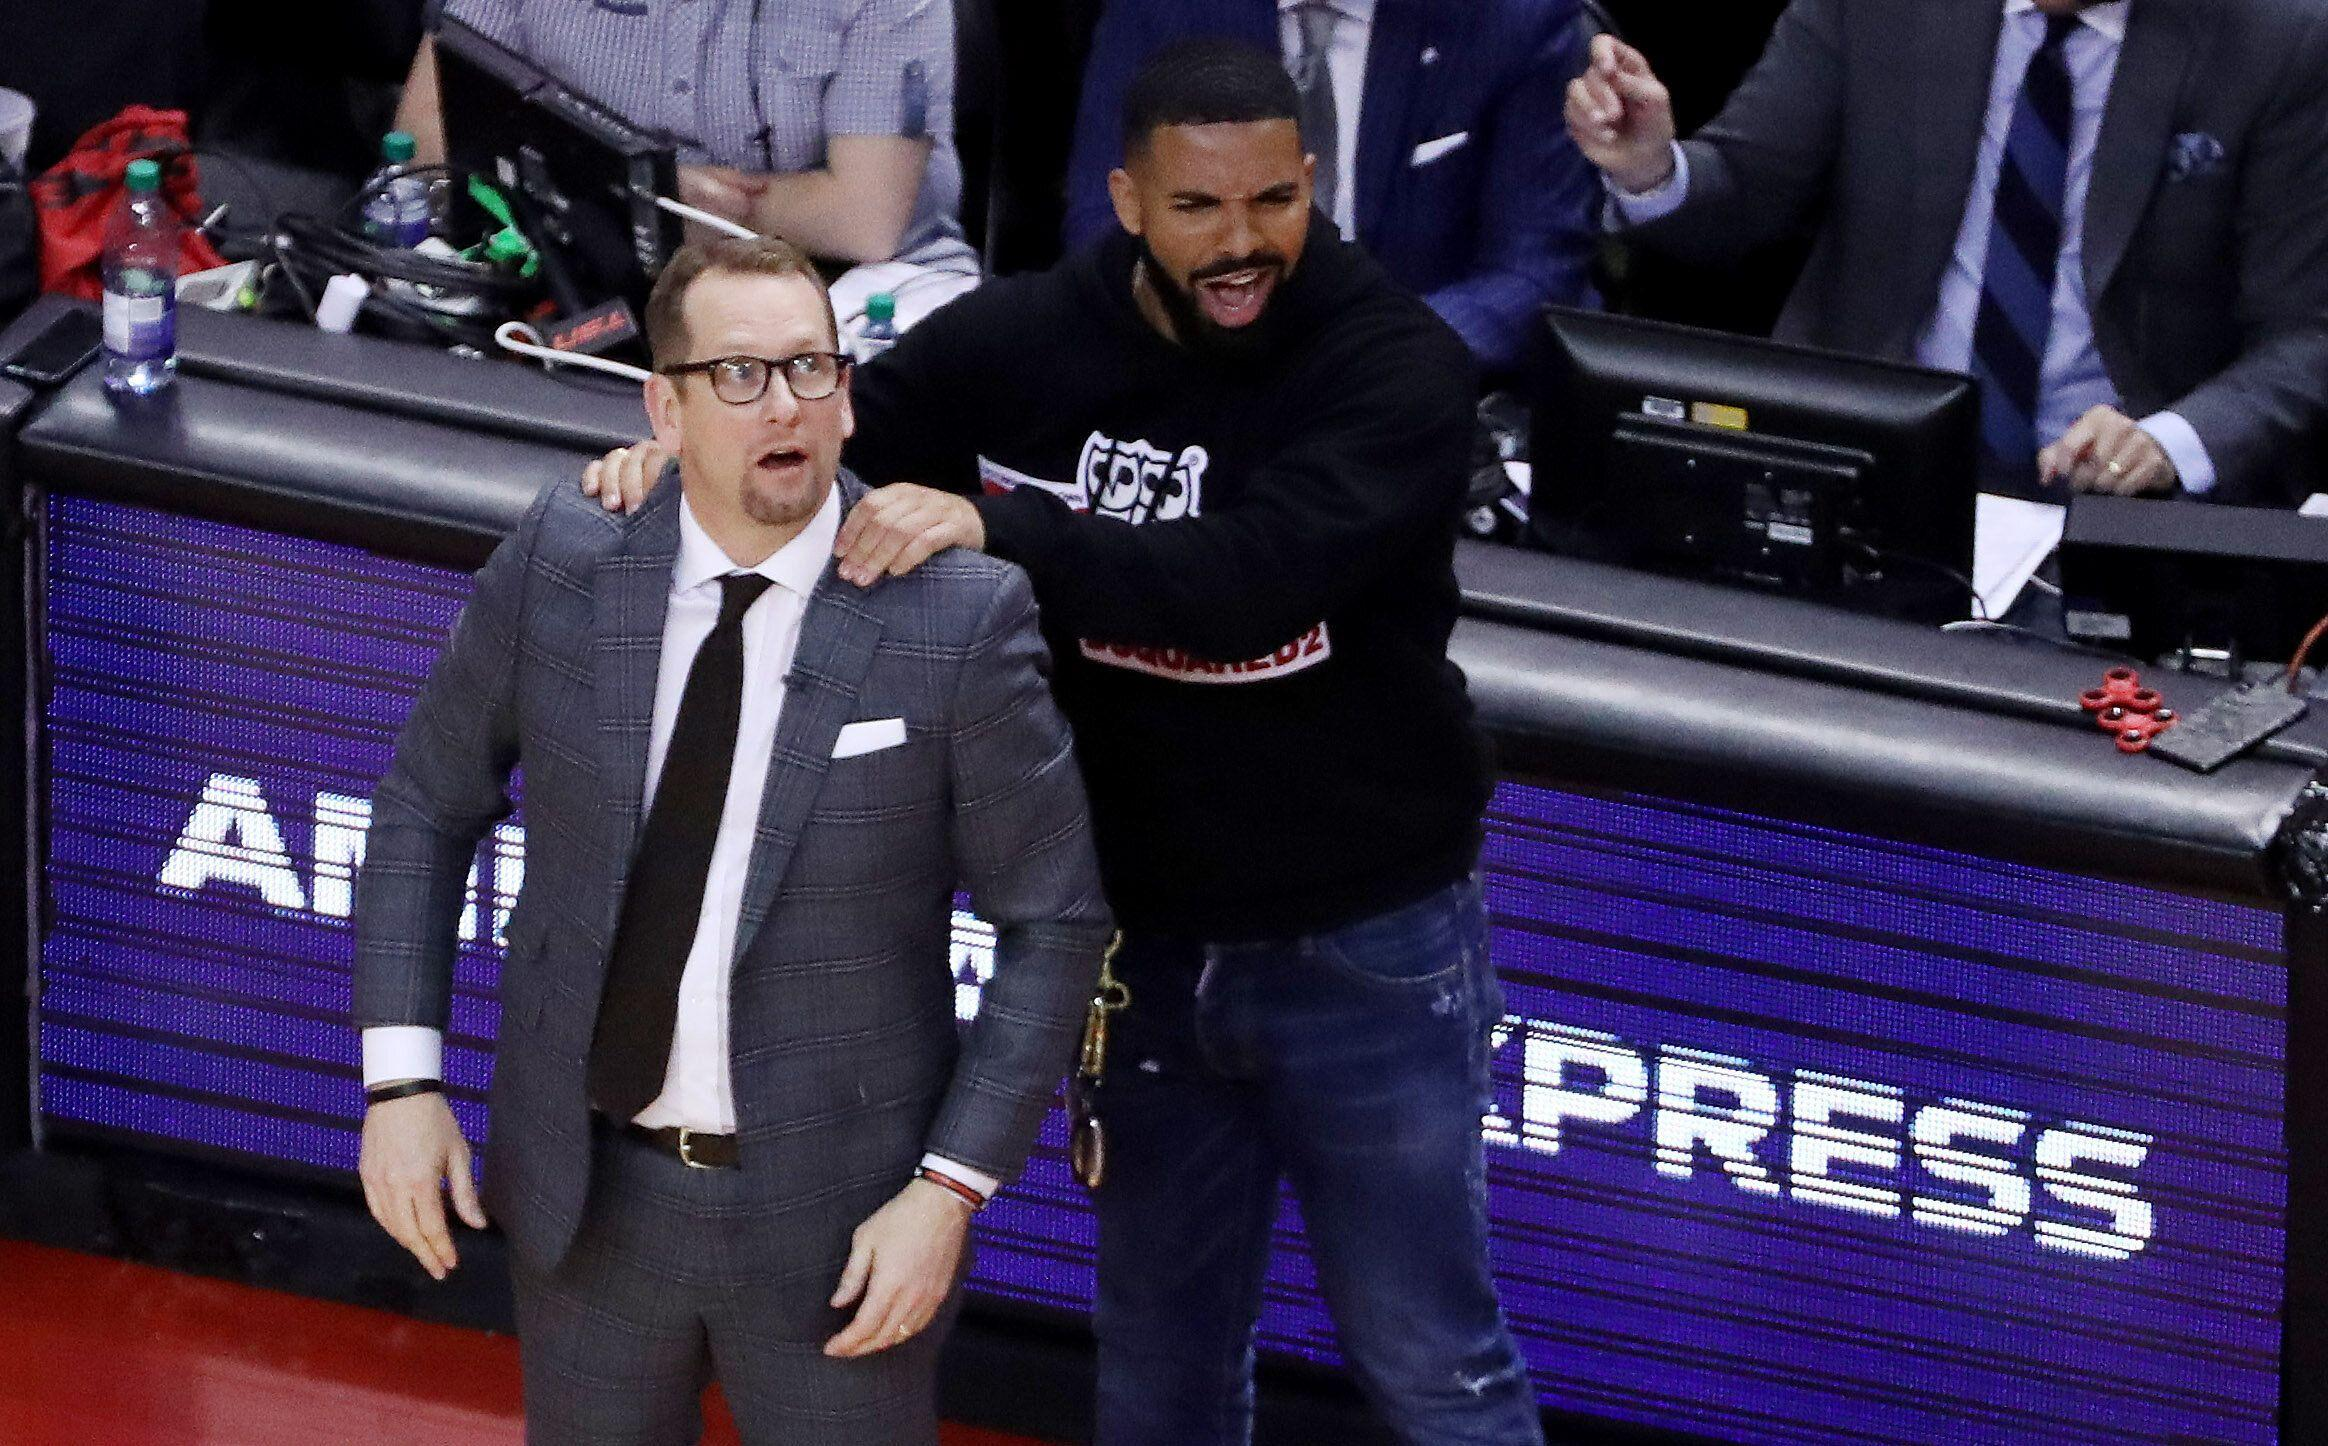 Draymond Green, Charles Barkley weigh in on Drake's sideline antics: He can't shoot, nor can he pass